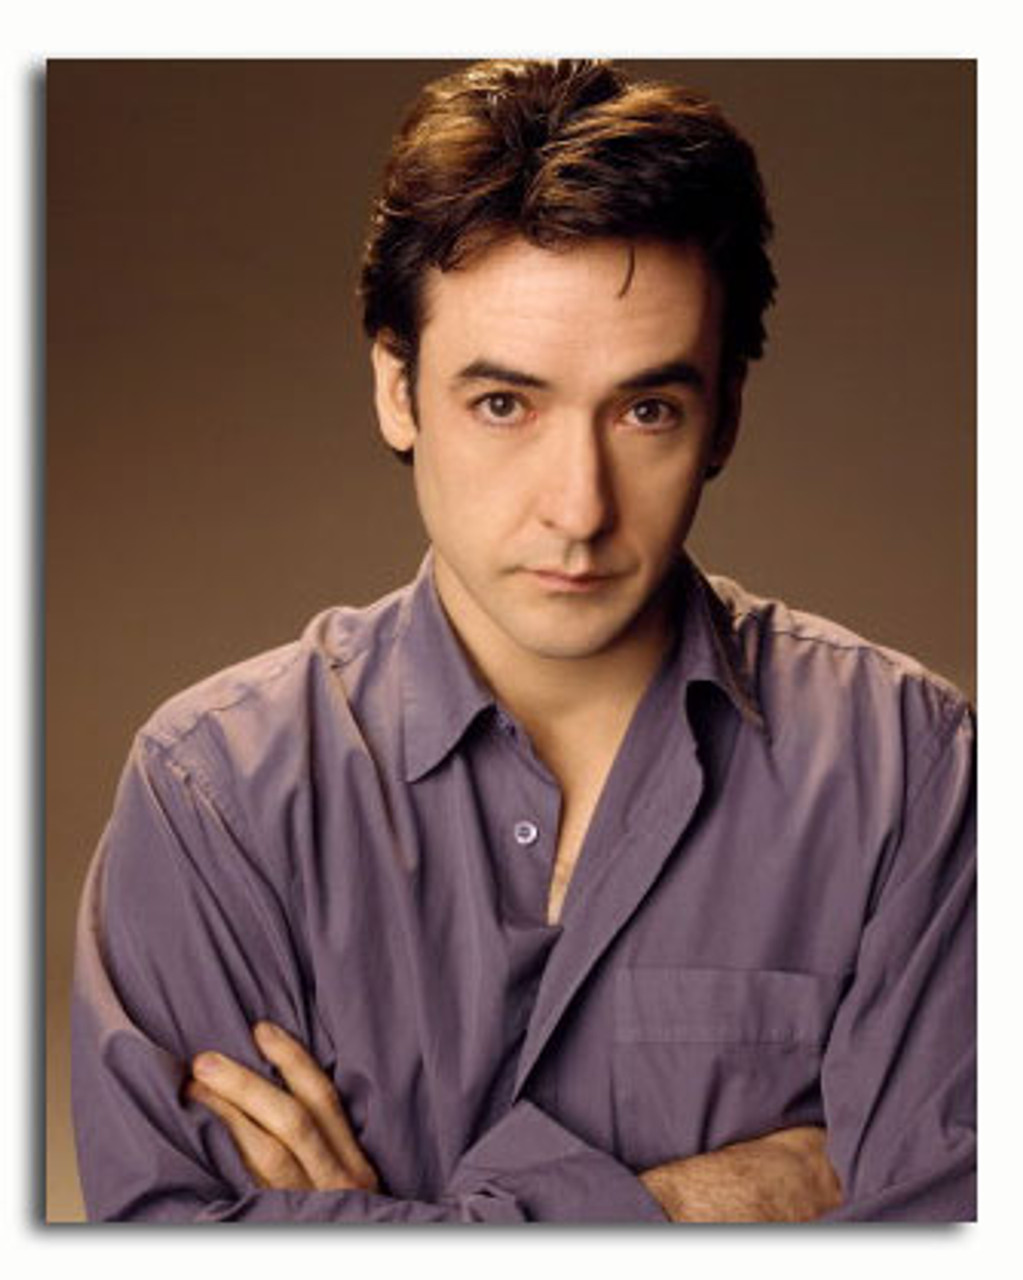 12 hours ago· cusack also trained under former world kickboxing champion benny urquidez for over 20 years, starting when he got his role in say anything in 1989. (SS3529539) Movie picture of John Cusack buy celebrity ...